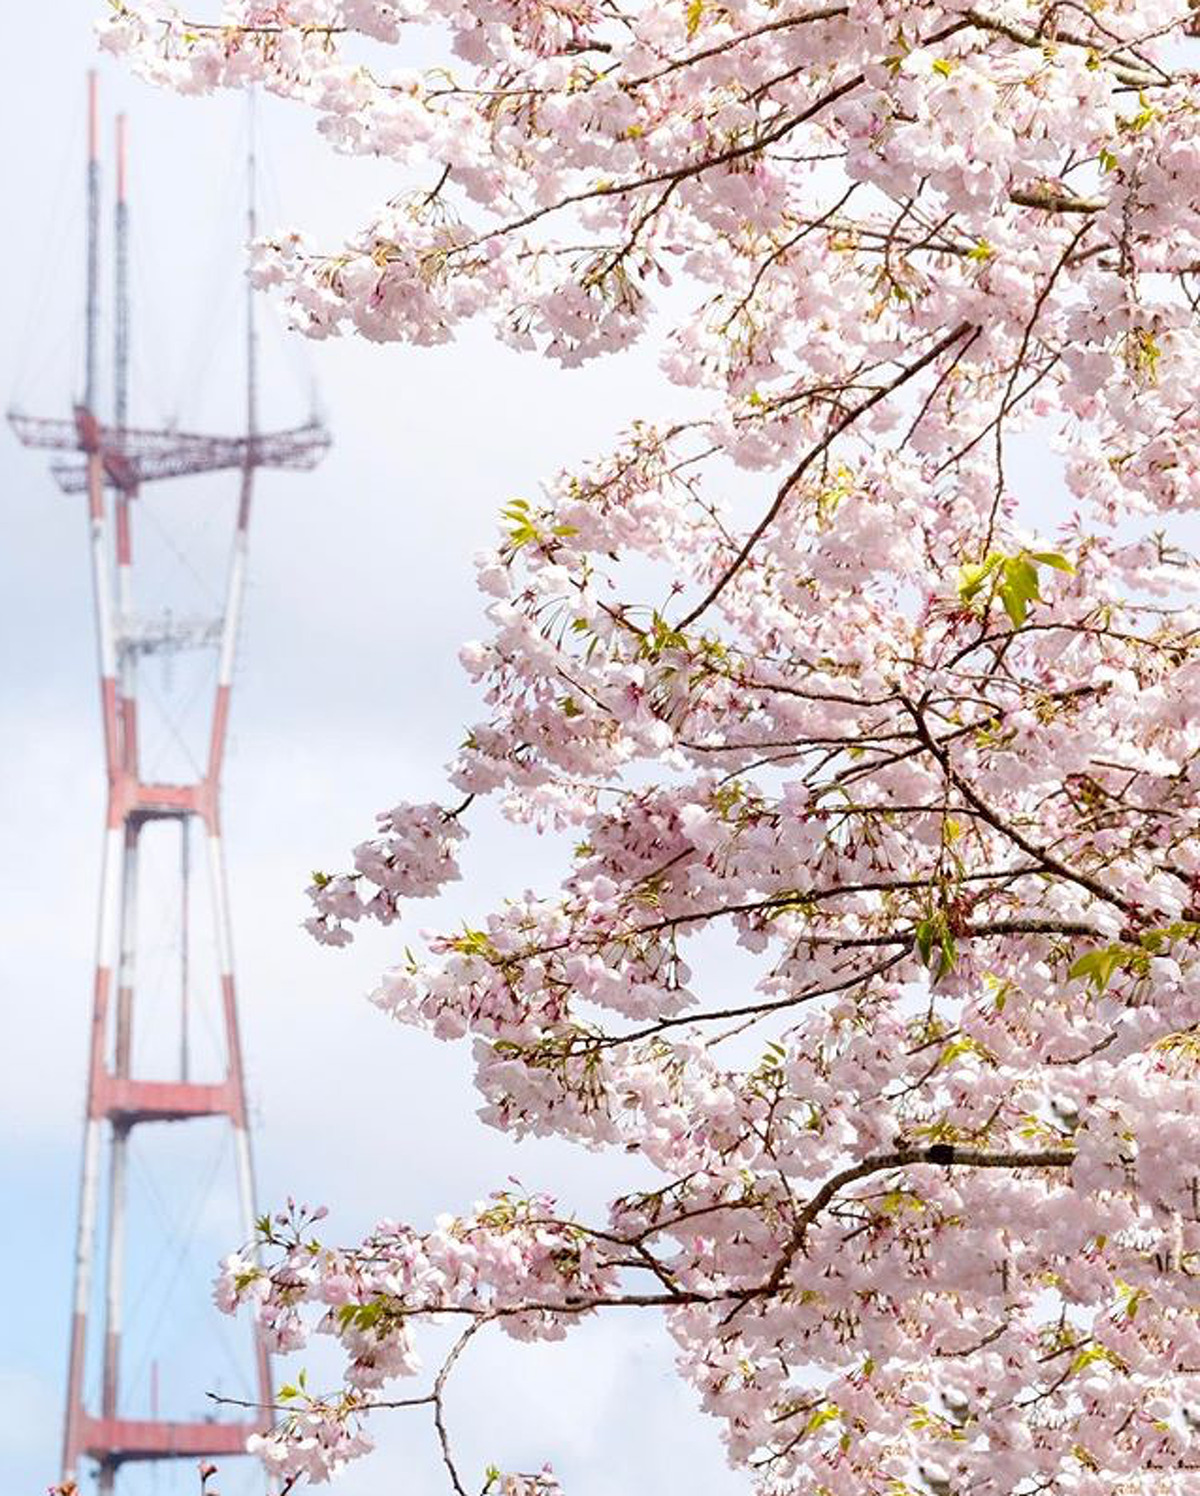 @the415guy caputred the cherry blossoms in full bloom in front of Sutro Tower.